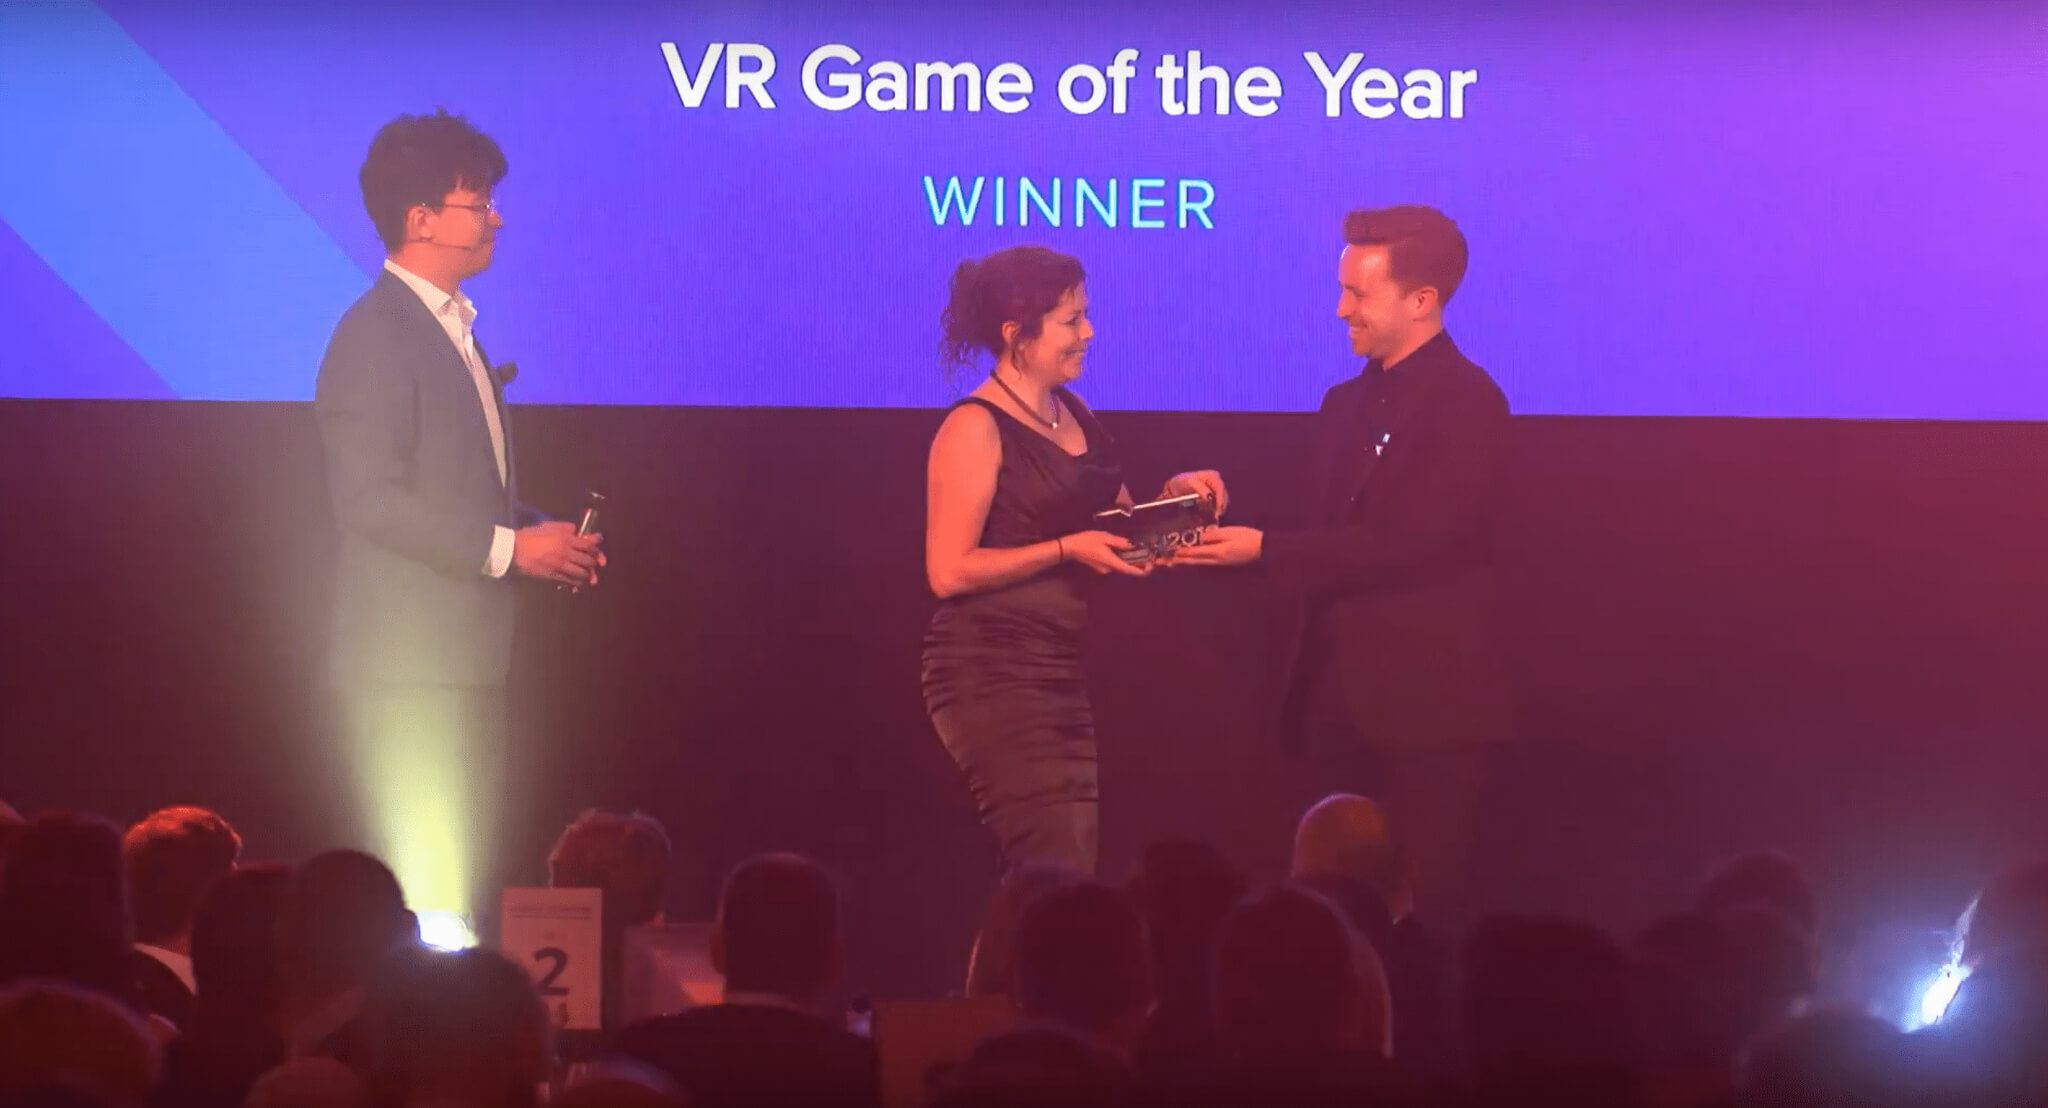 VR Game of the Year Winner